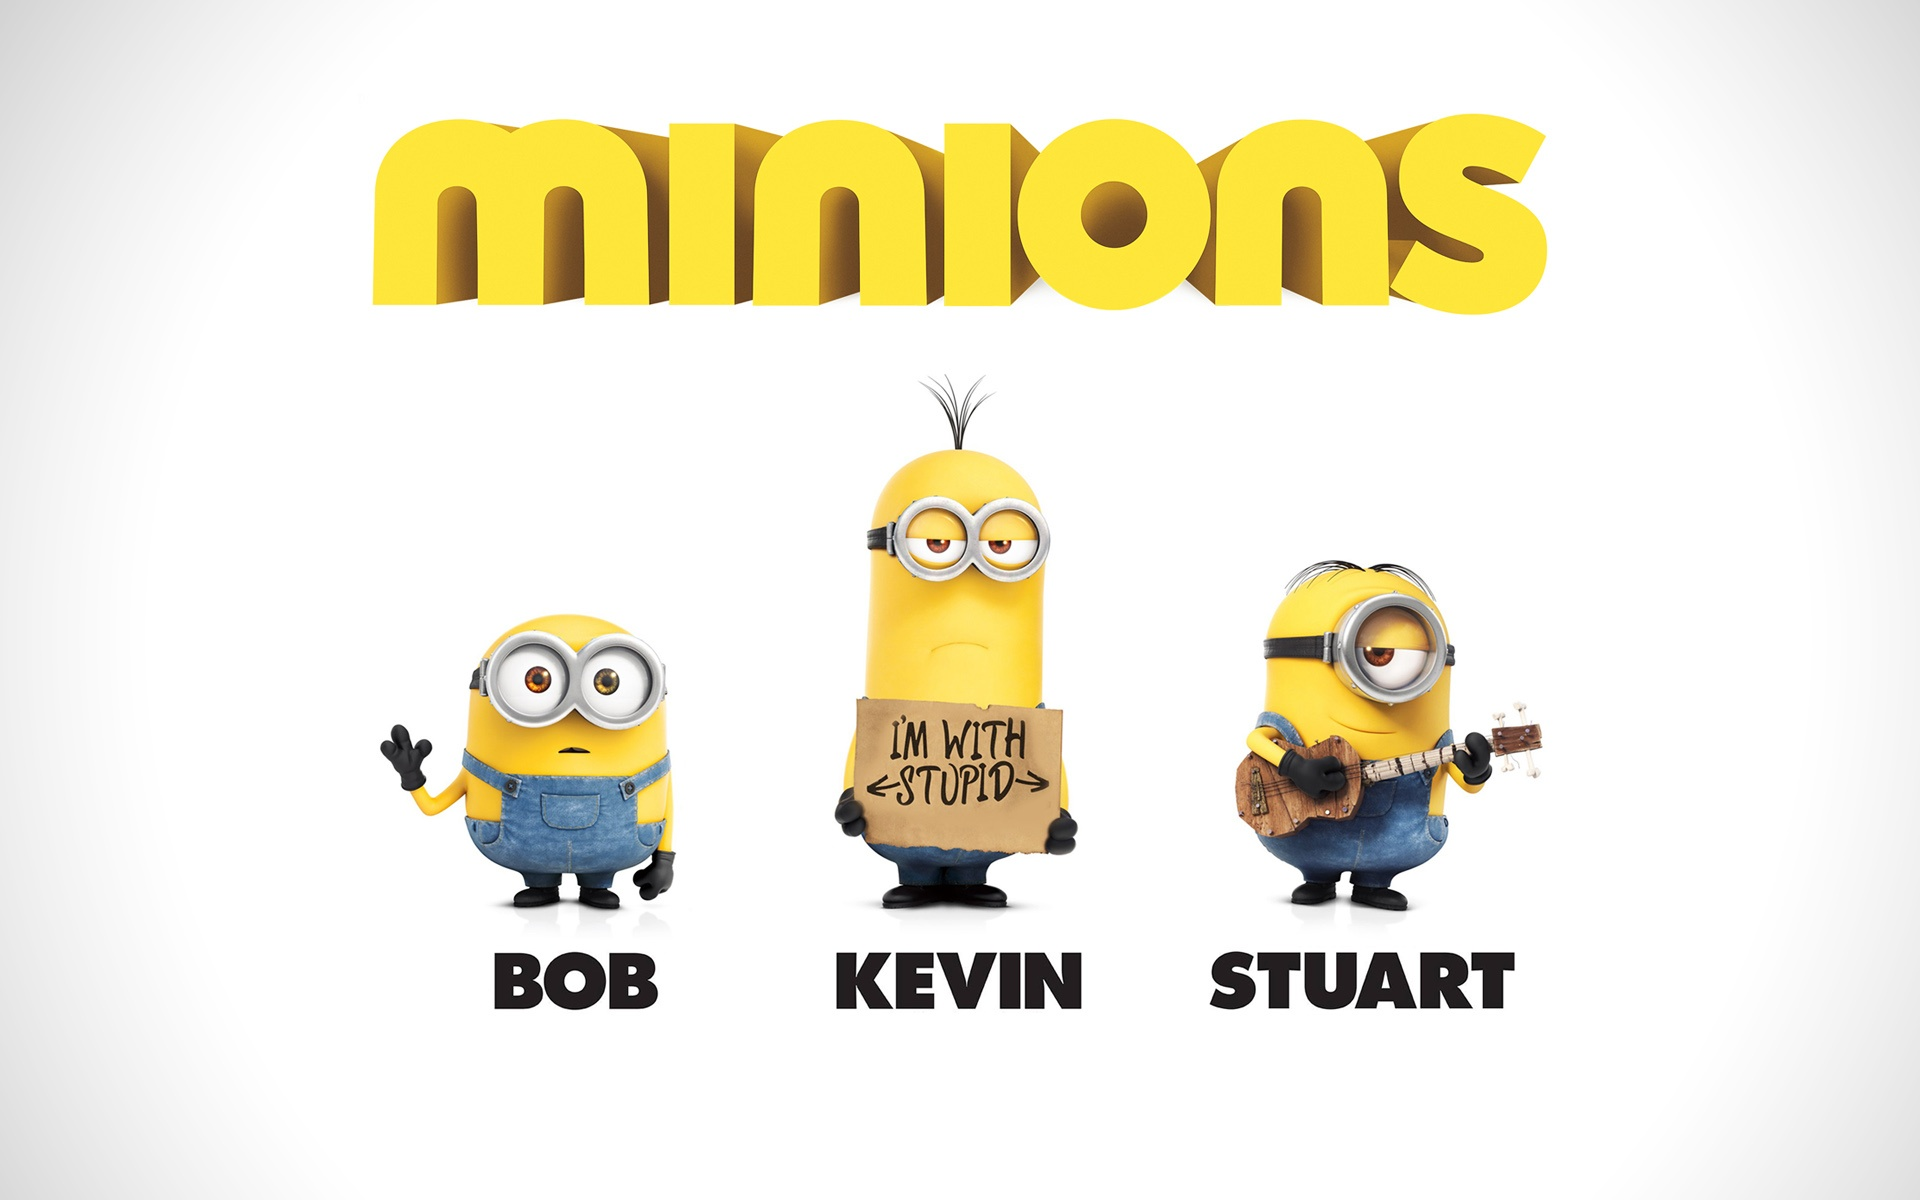 minions-movie-bob-kevin-and-stuart-wallpaper-poster-2015